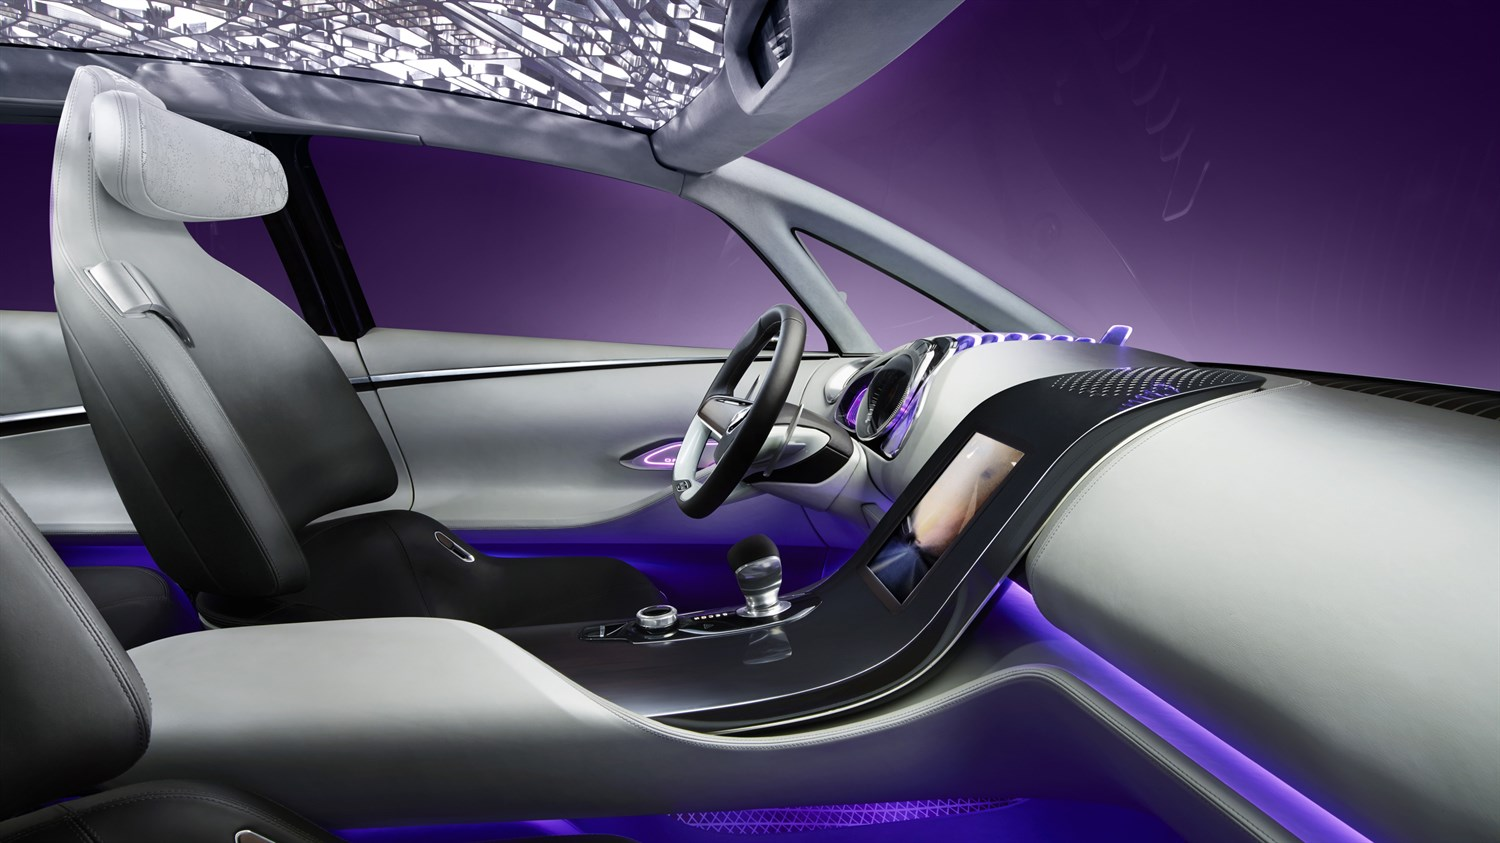 Renault INITIALE PARIS Concept - close-up of central column